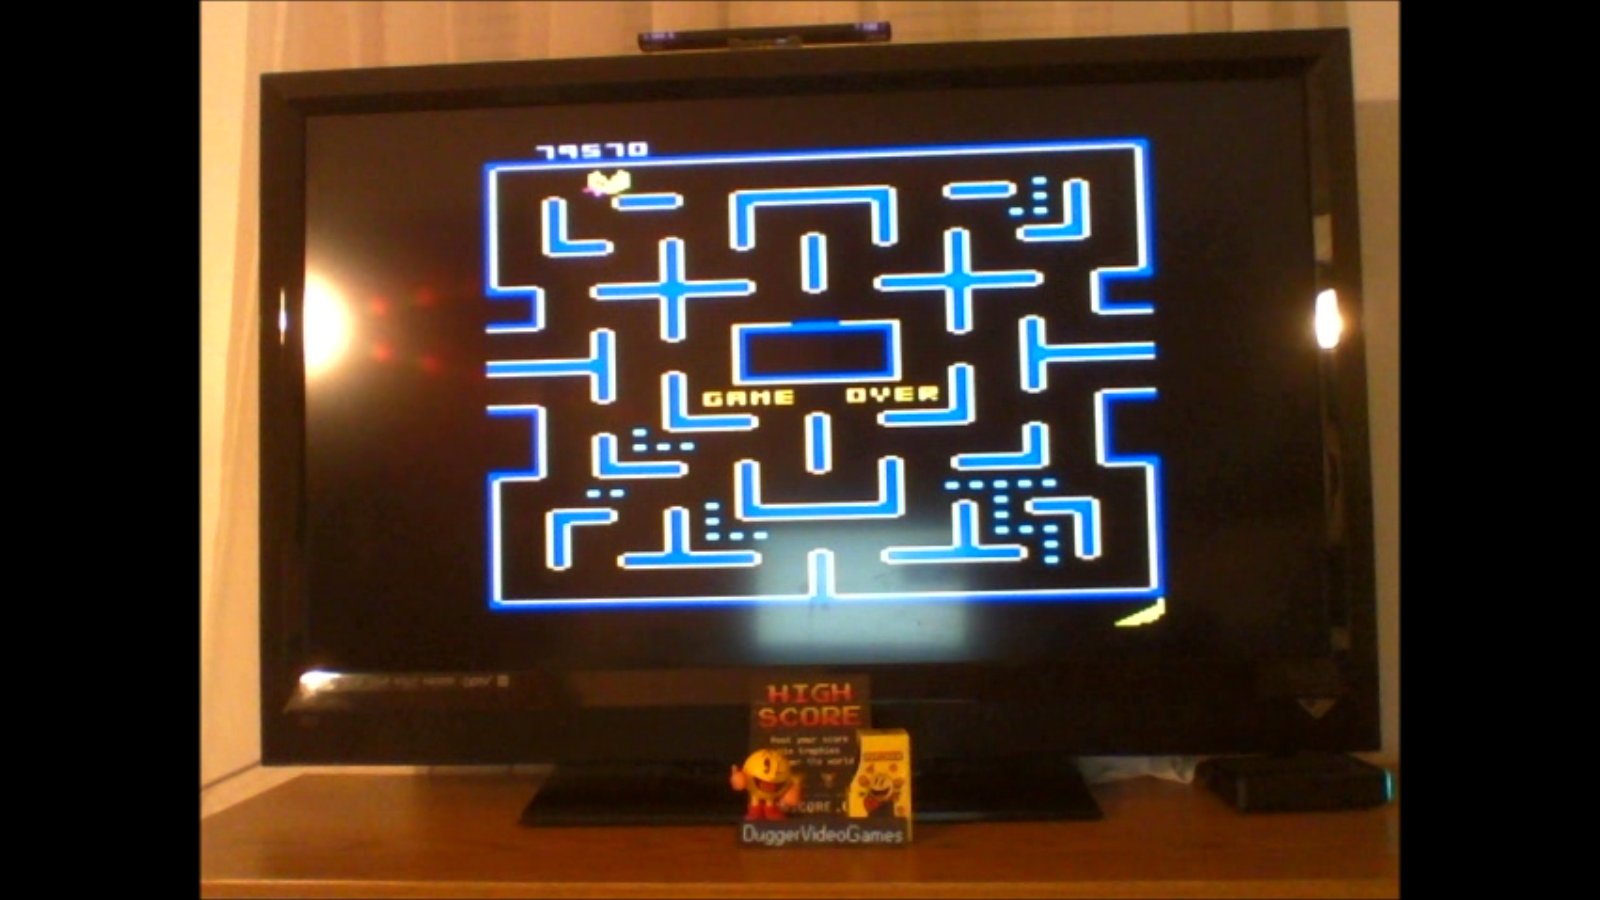 DuggerVideoGames: Ms. Pac-Man: Banana Start (Atari 7800 Emulated) 79,570 points on 2016-12-21 17:34:28